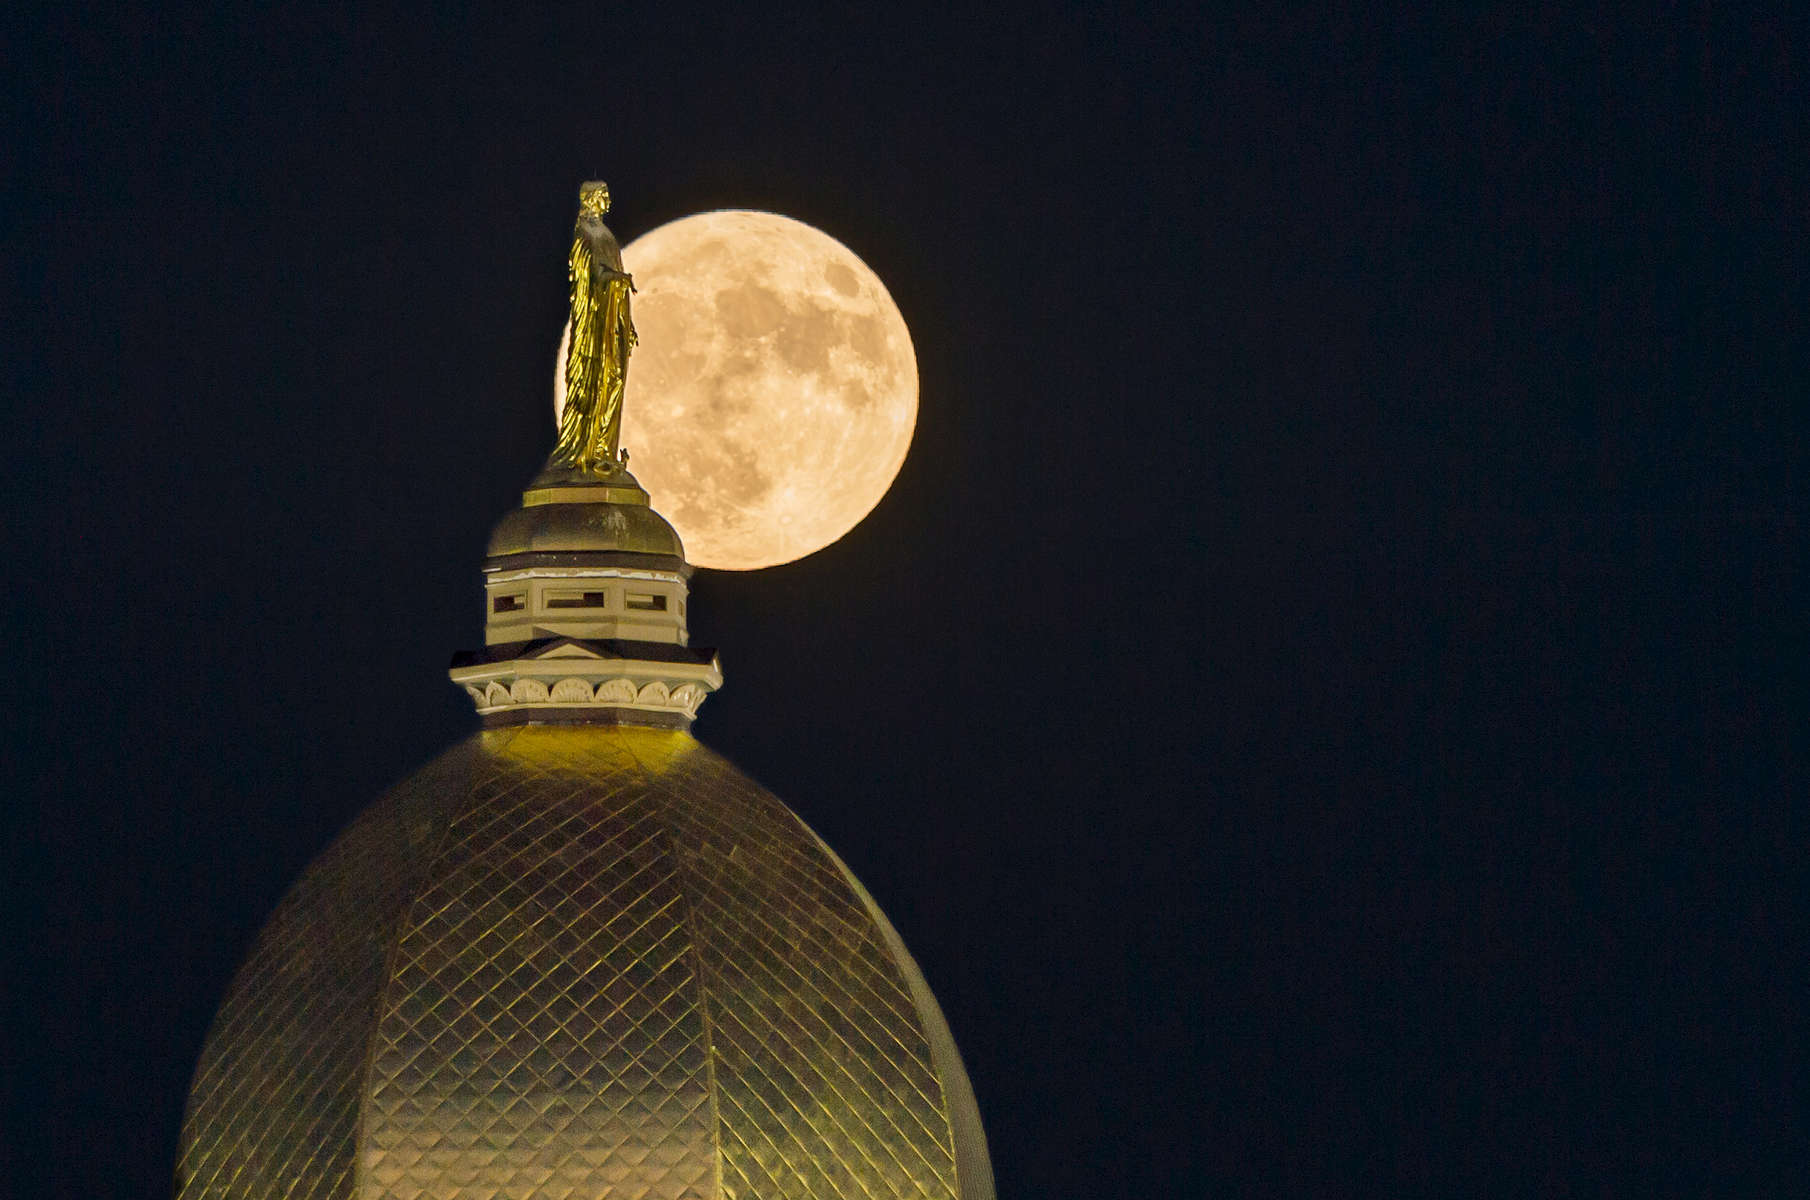 A super moon rises behind the  Golden Dome.